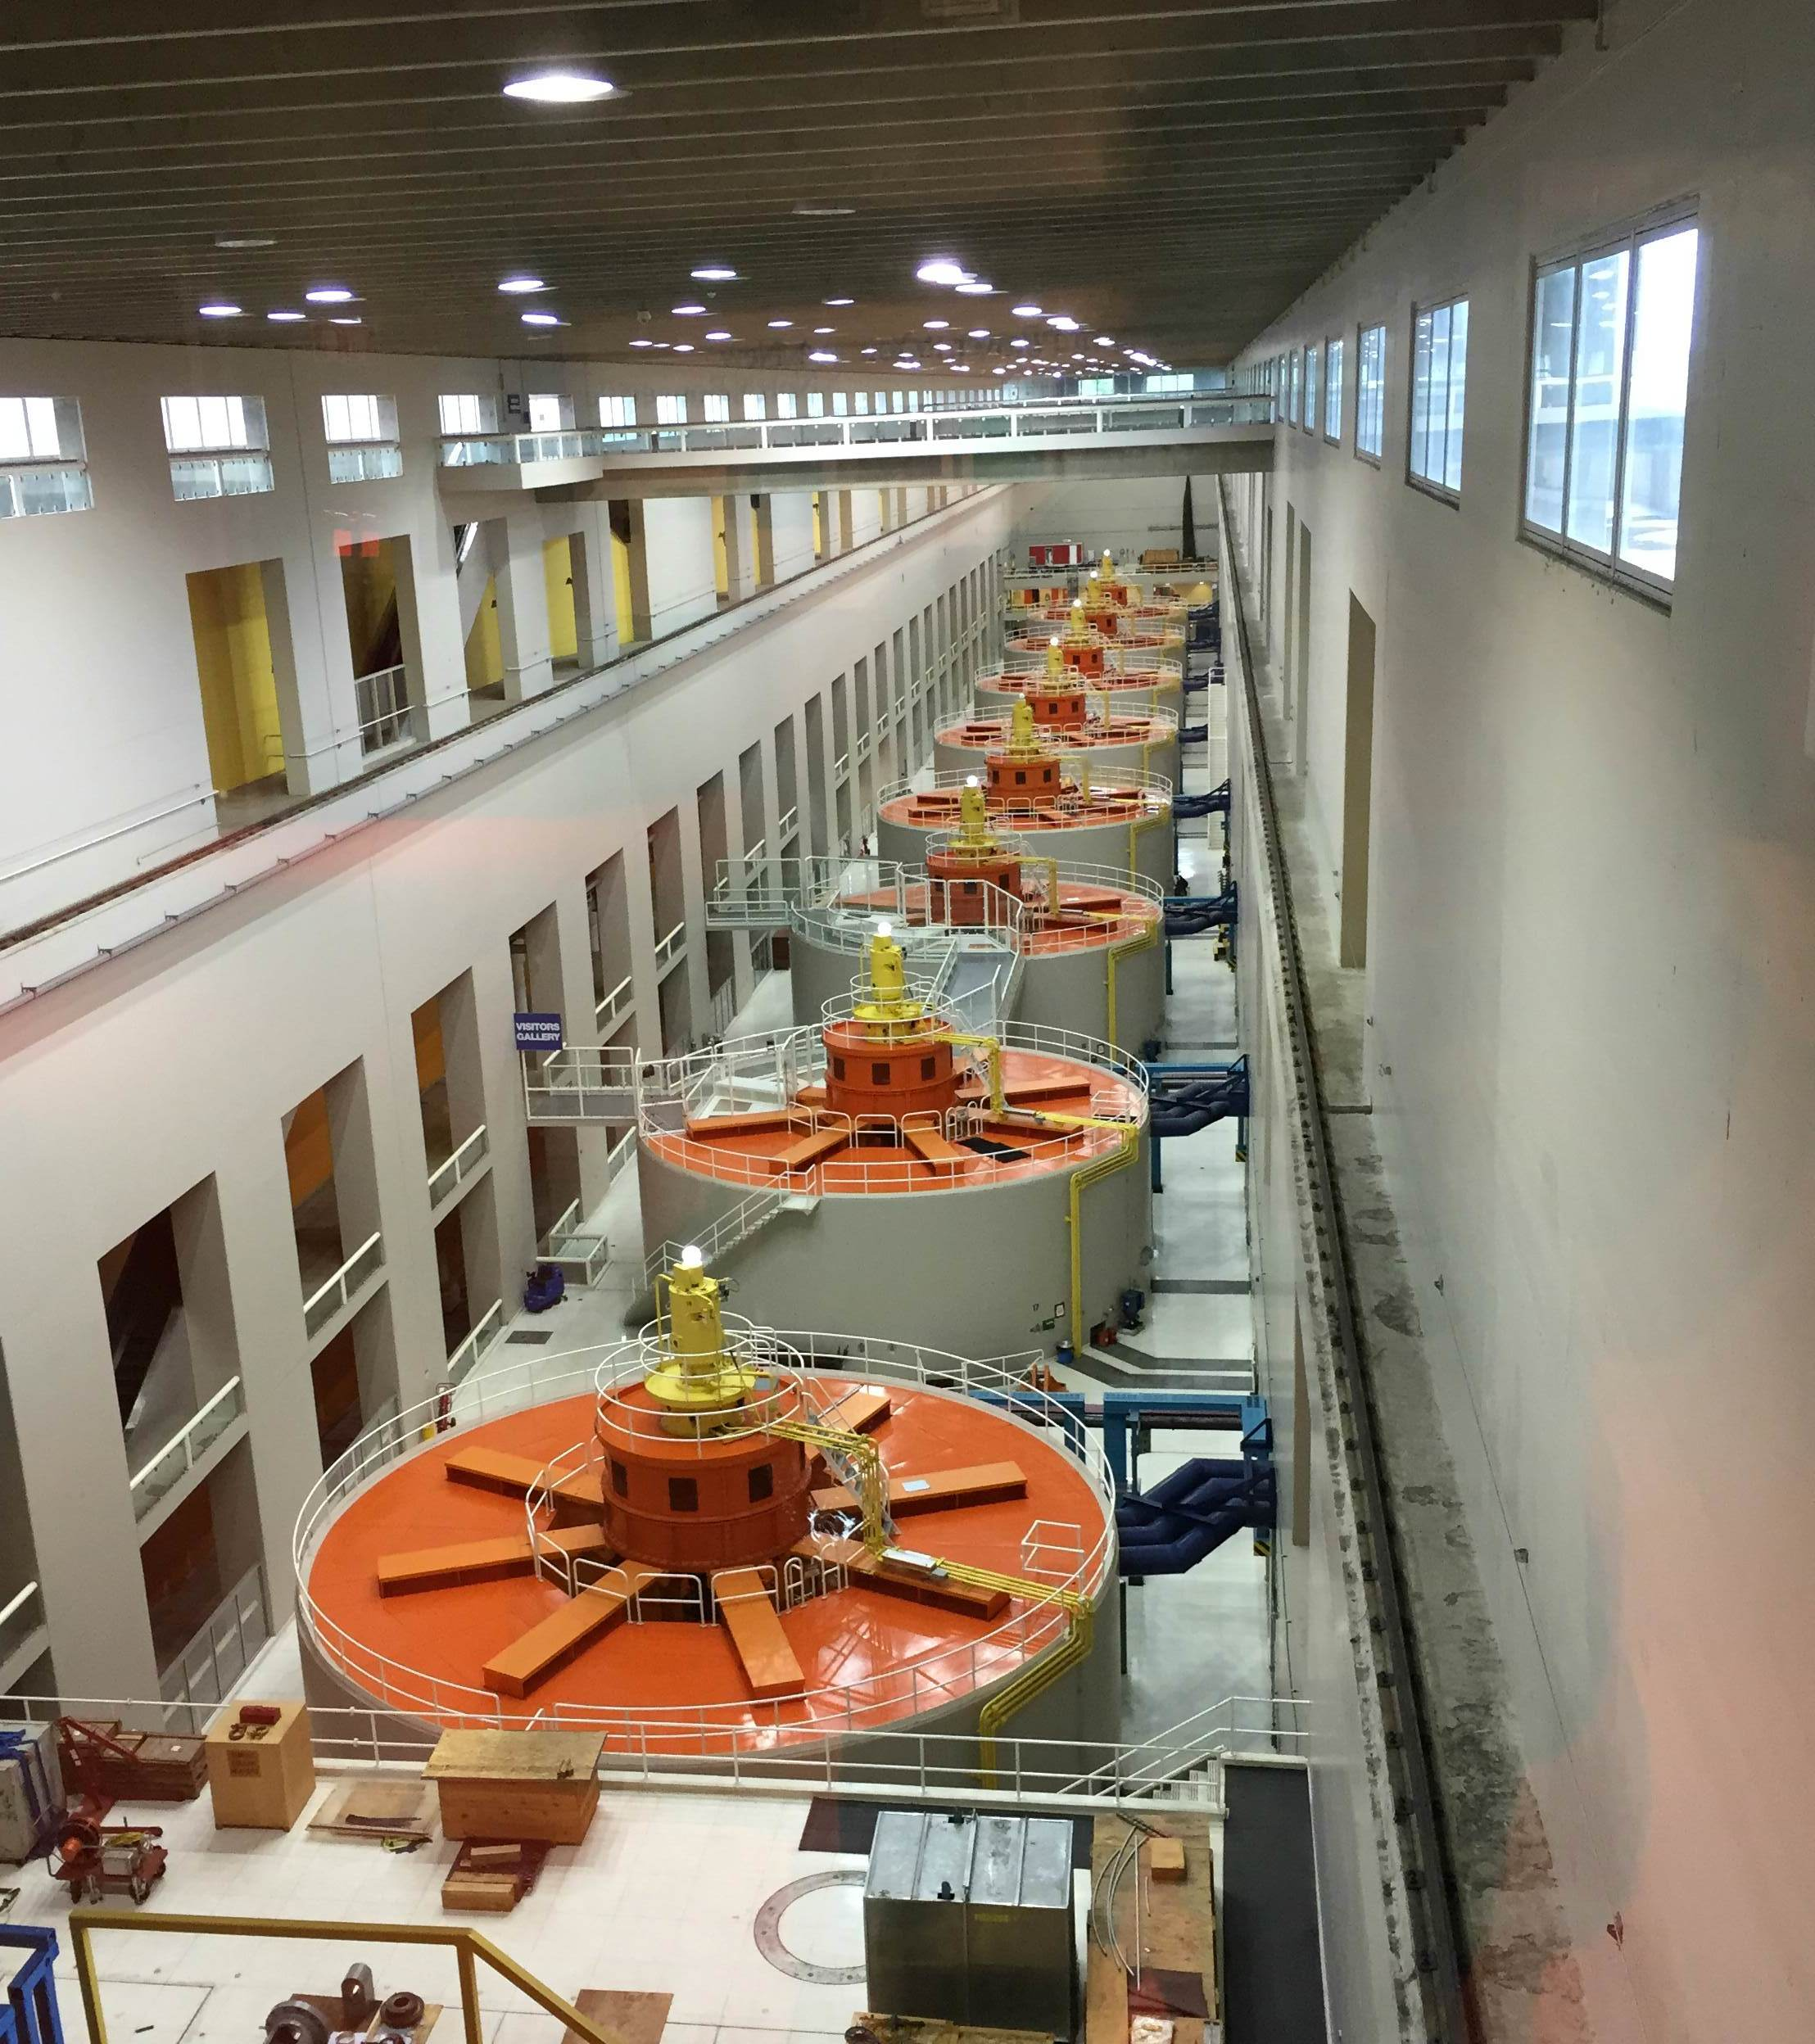 Inside the Bonneville Dam